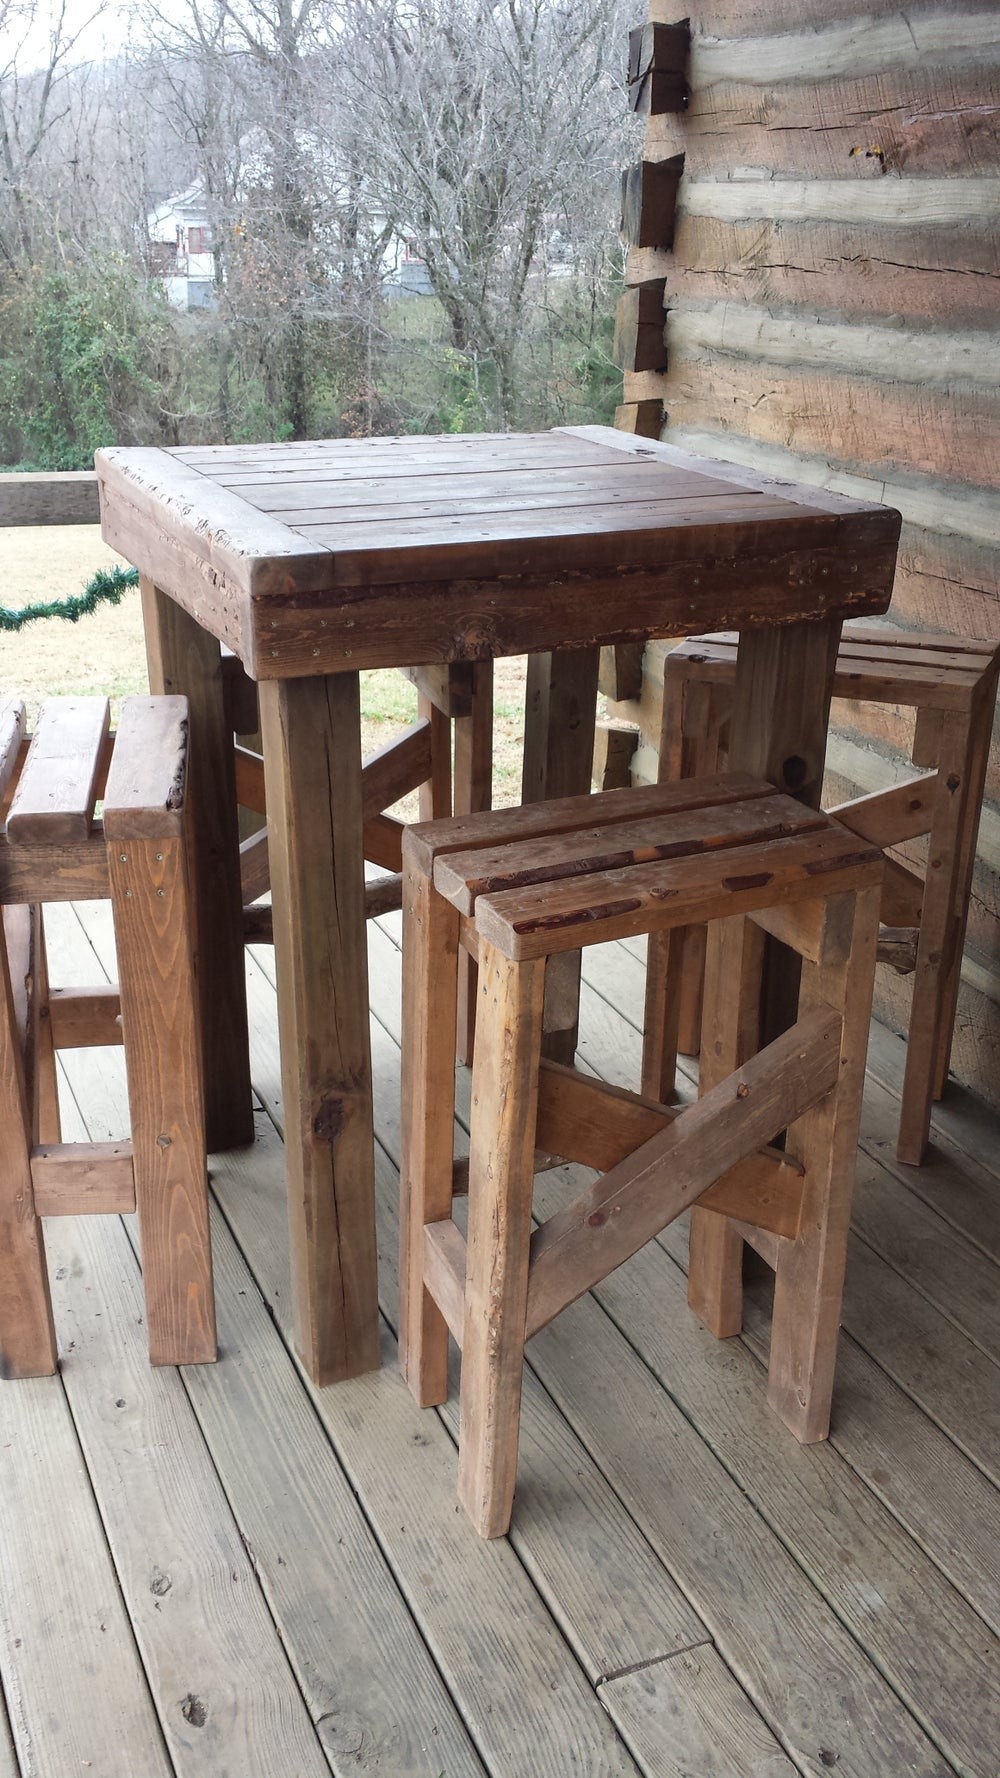 Image of Pub table with stools